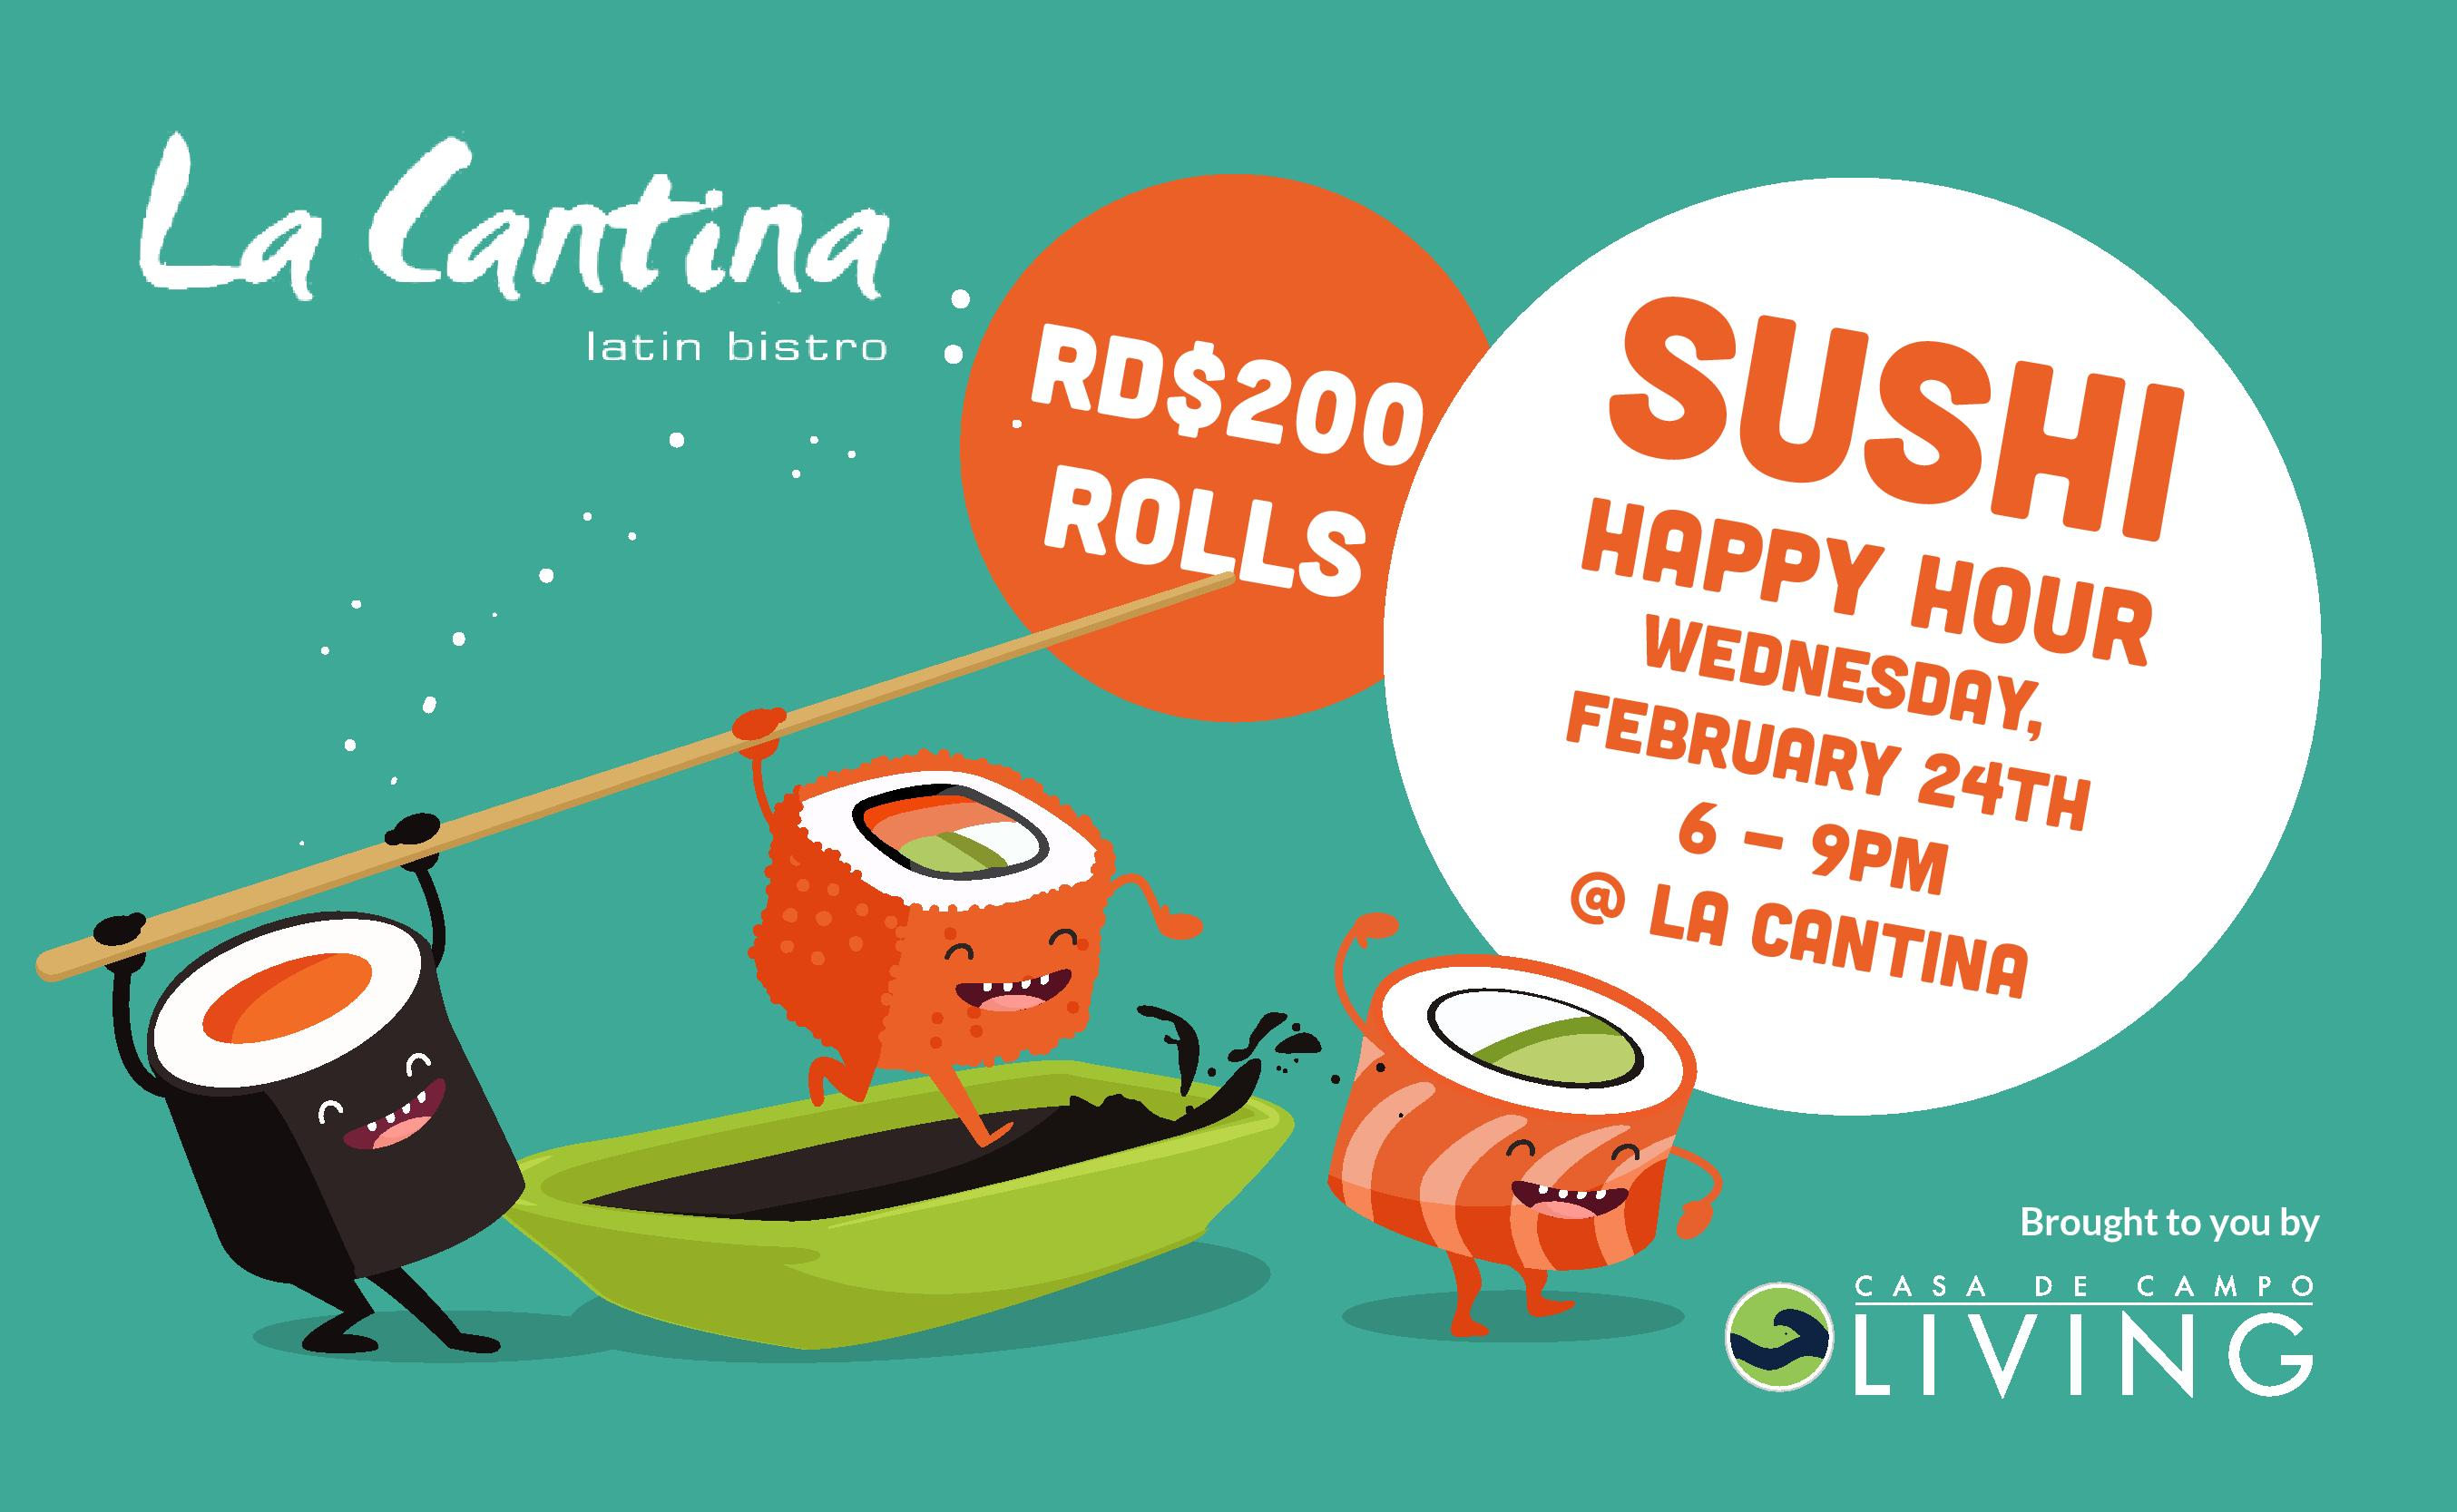 La Cantina Sushi Happy Hour